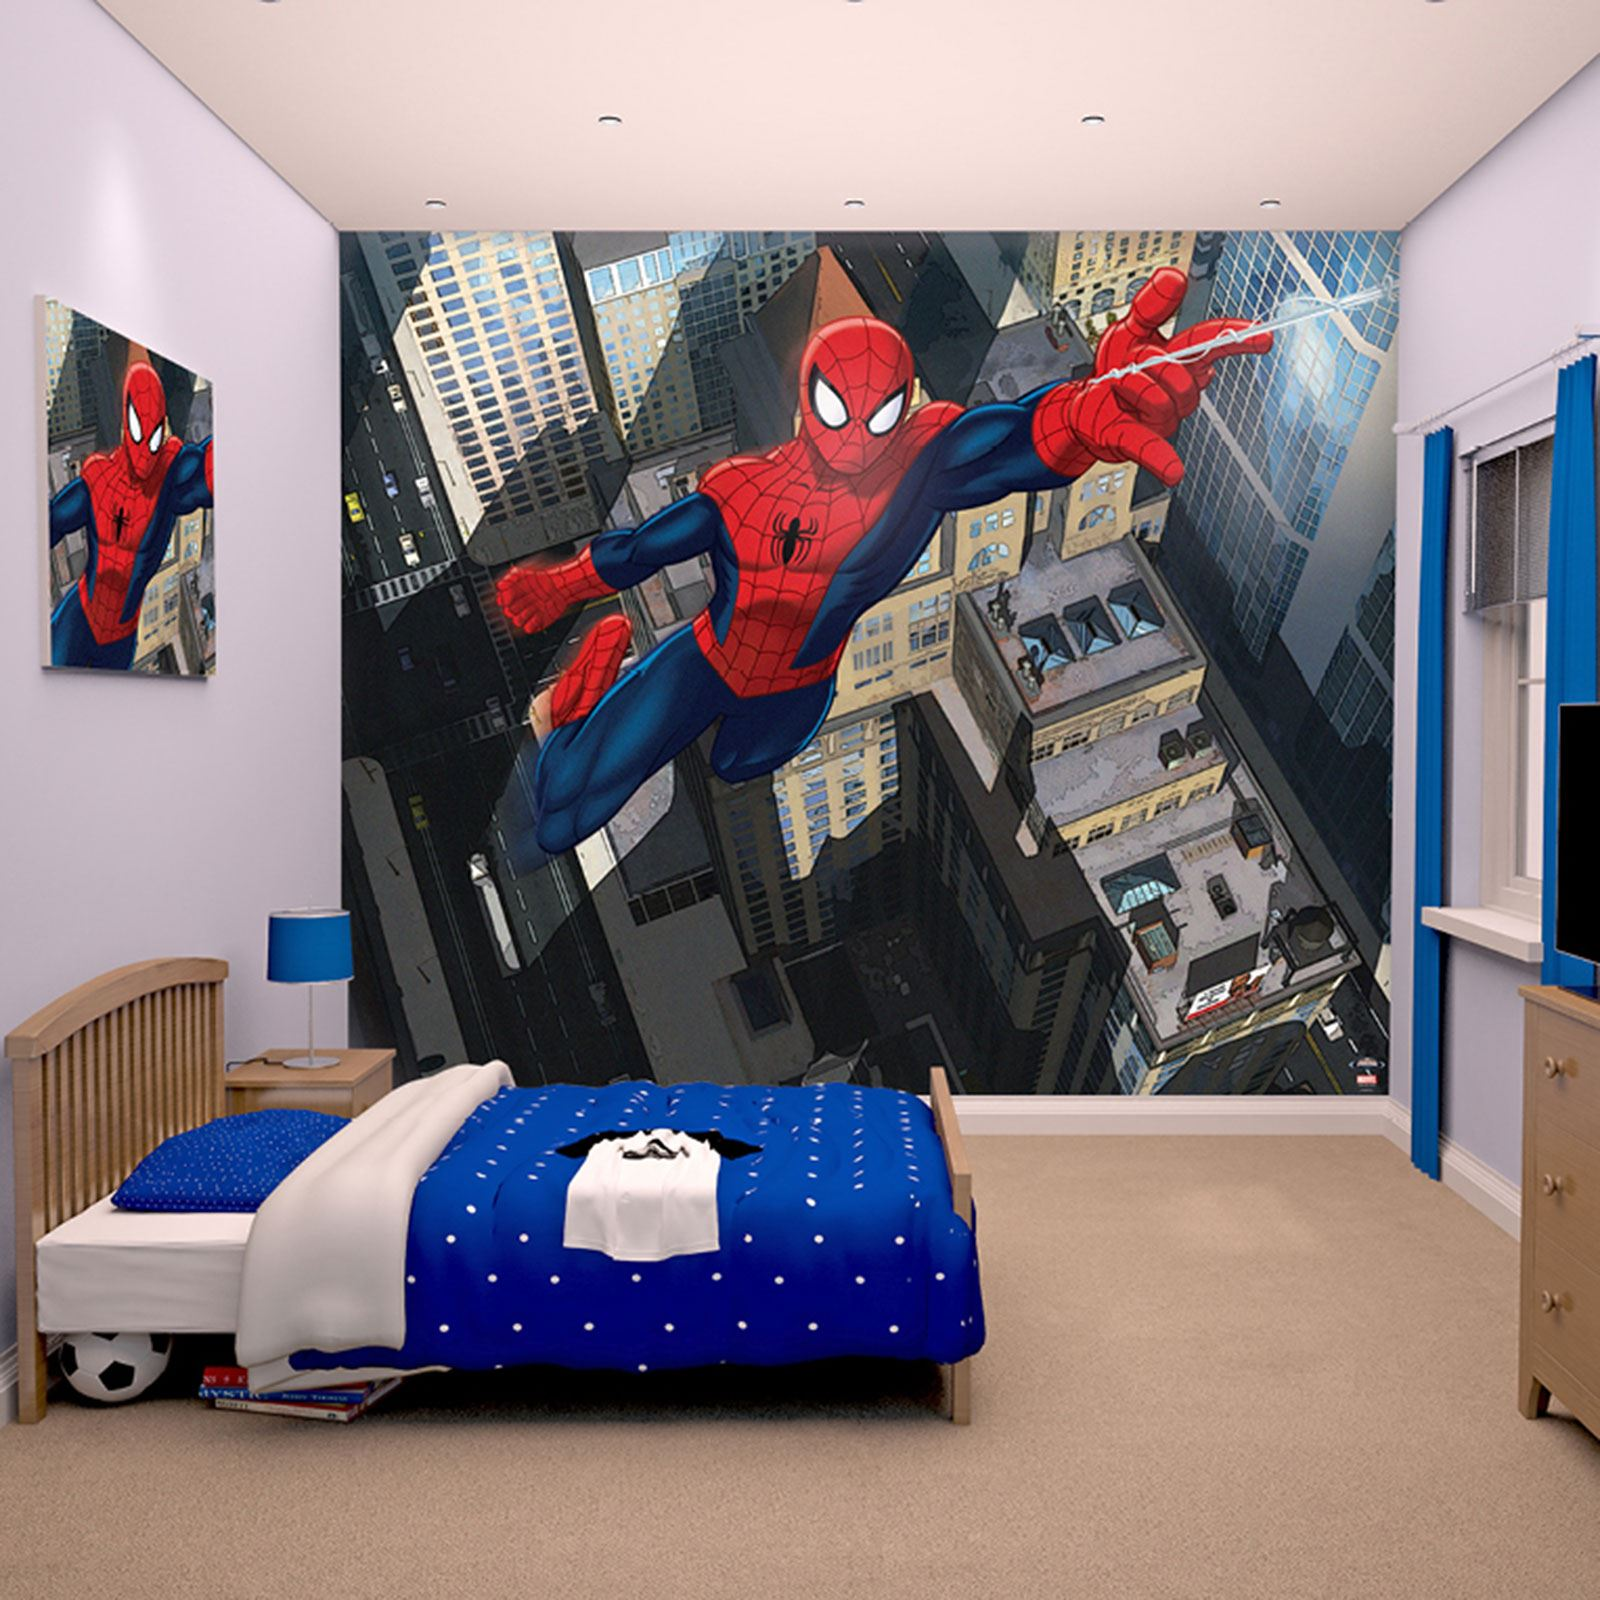 WALLTASTIC WALLPAPER WALL MURALS KIDS BEDROOM PEPPA AVENGERS  Part 61